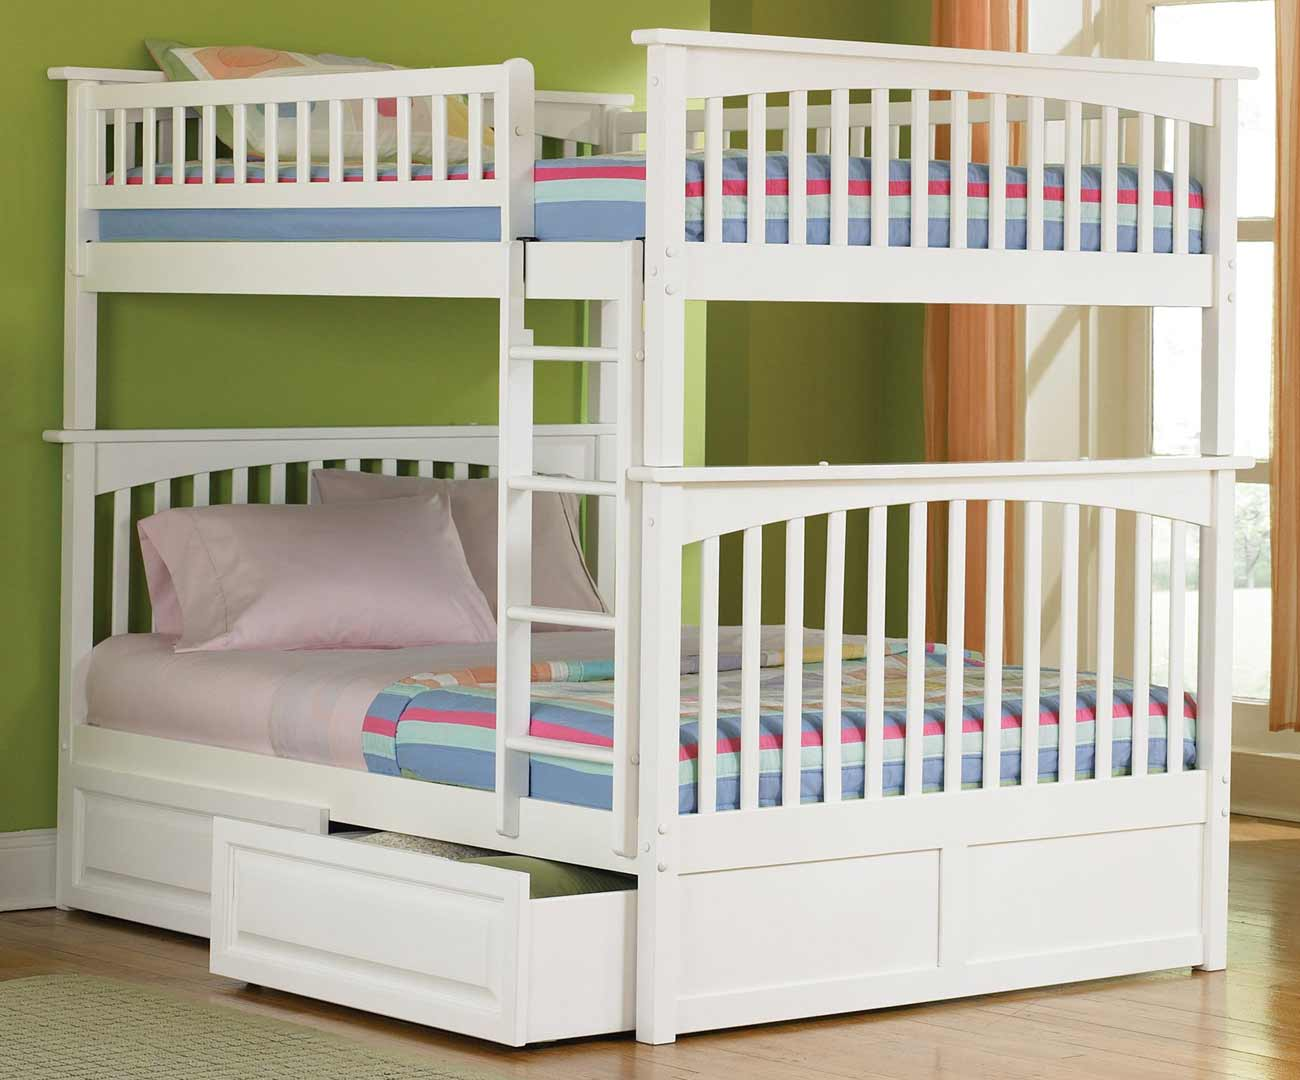 Bunk Beds For Adults Feel The Home